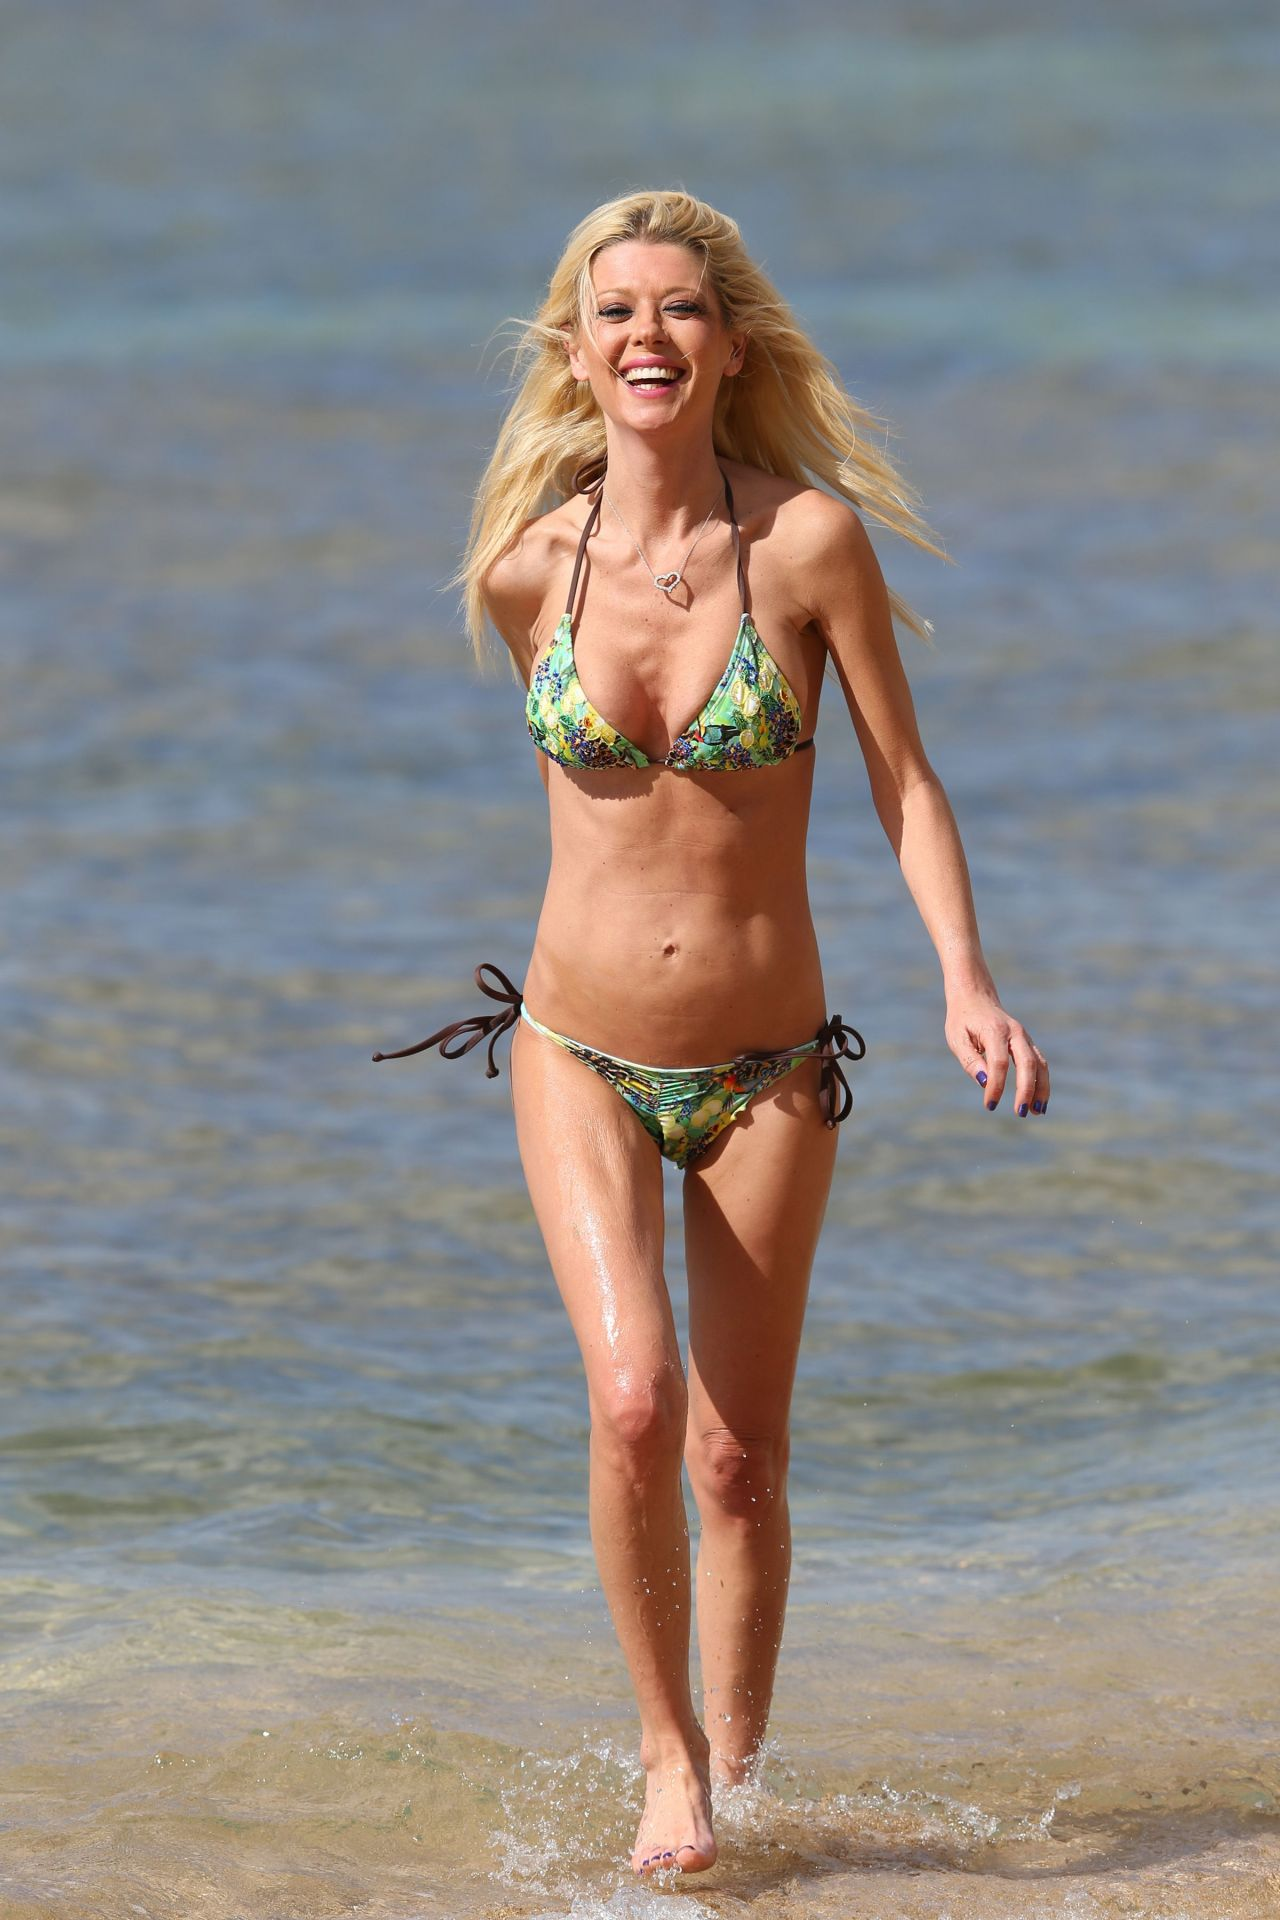 Tara Reid Shows Off Her Bikini Body At A Beach In Hawaii